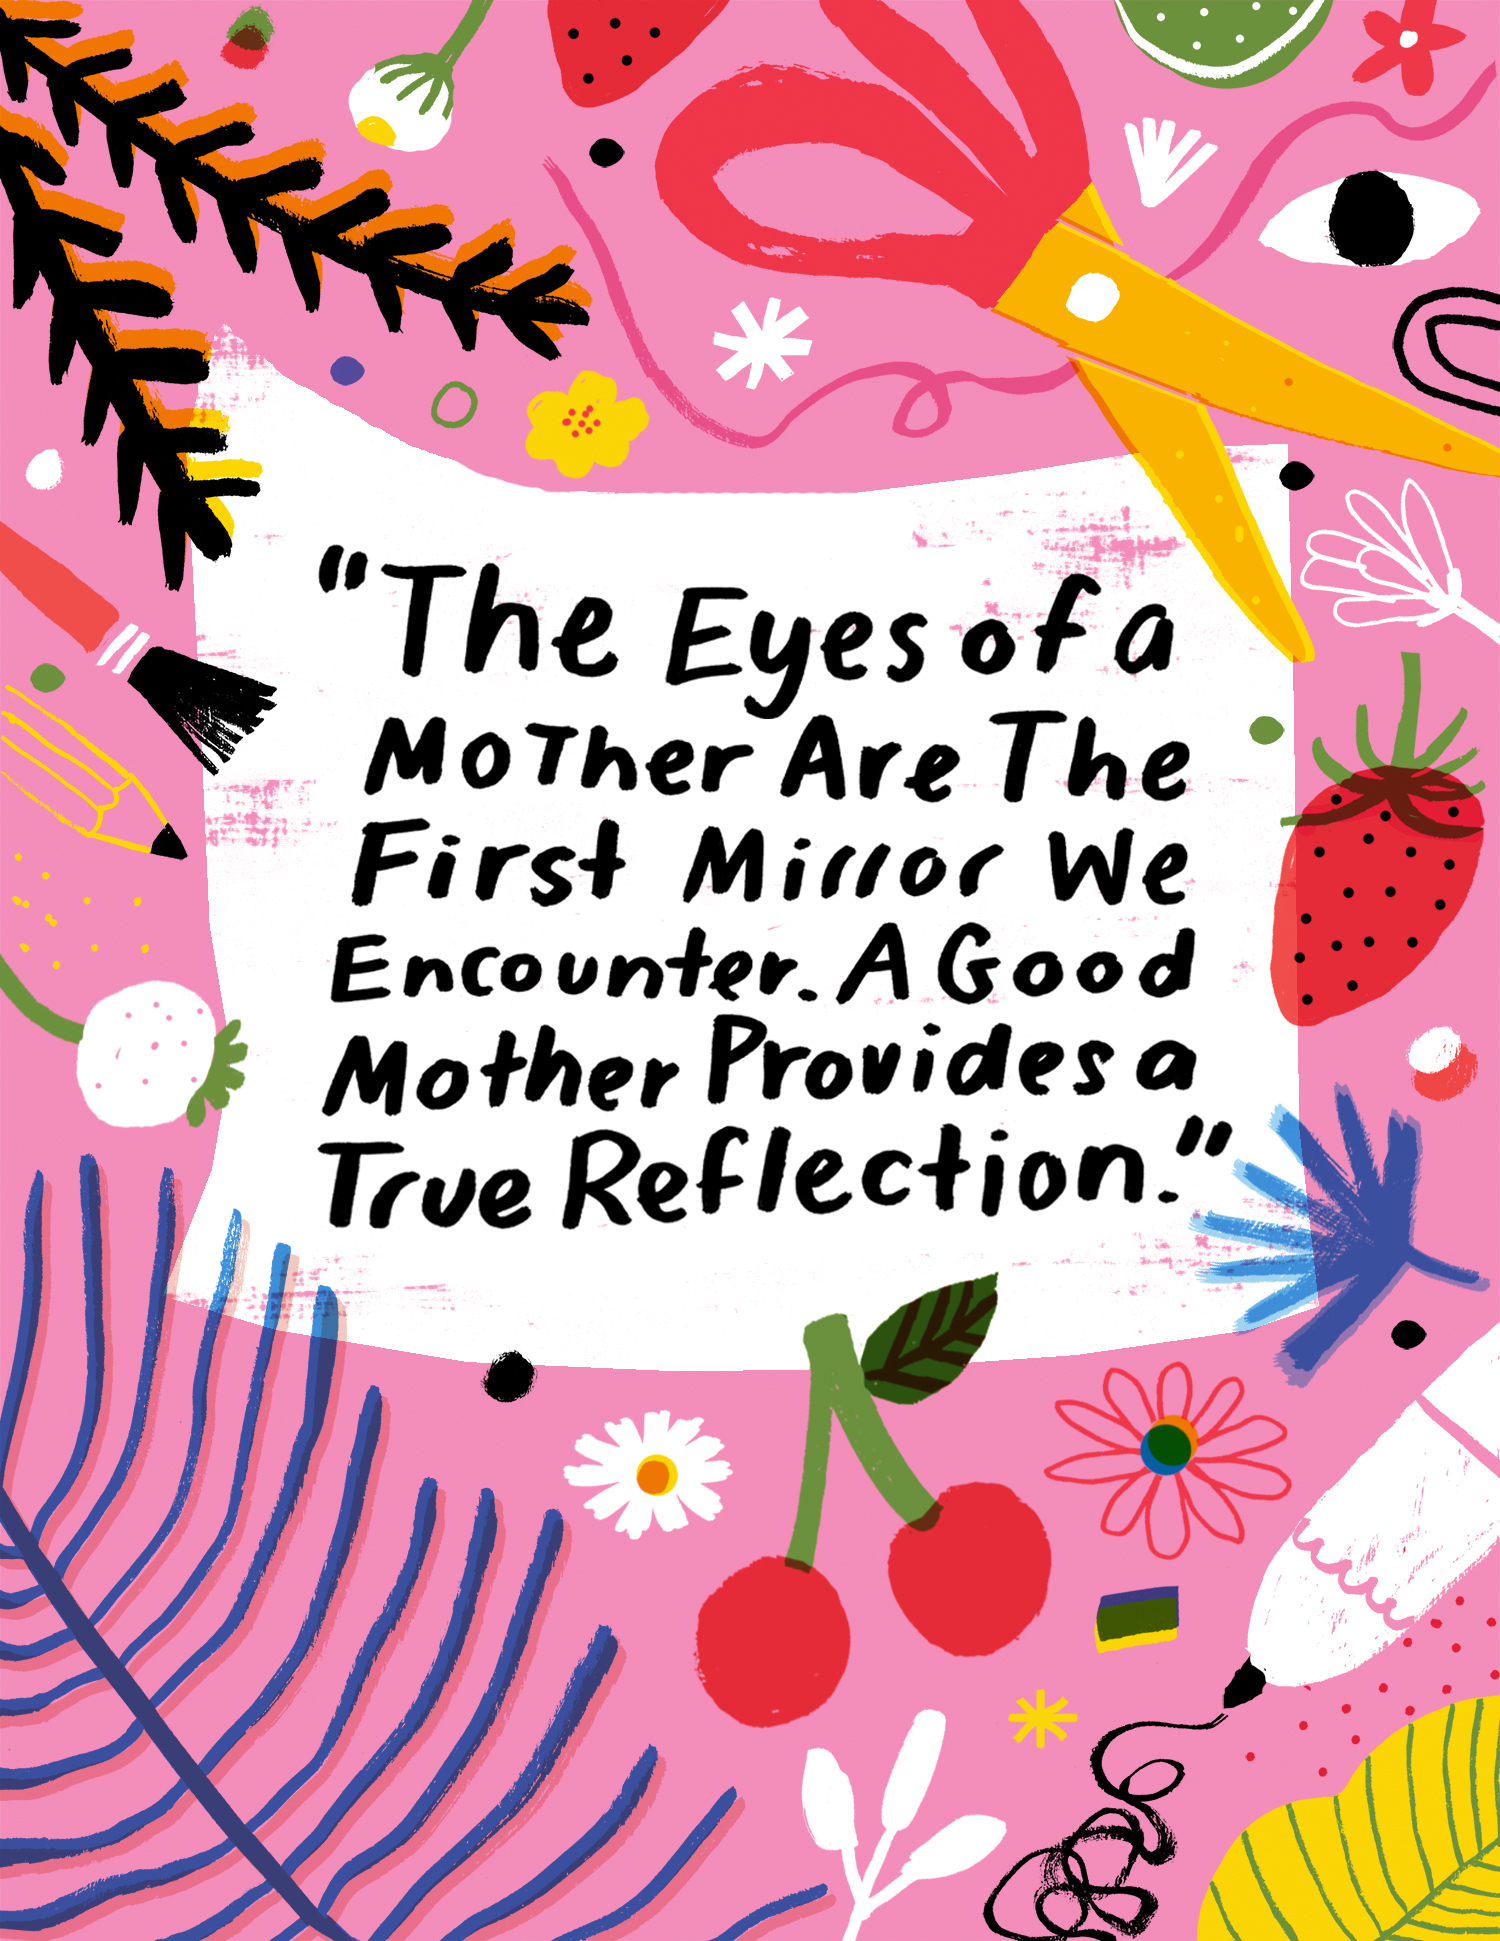 Mother's Day quote illustrated by Jordan Sondler for The House That Lars Built